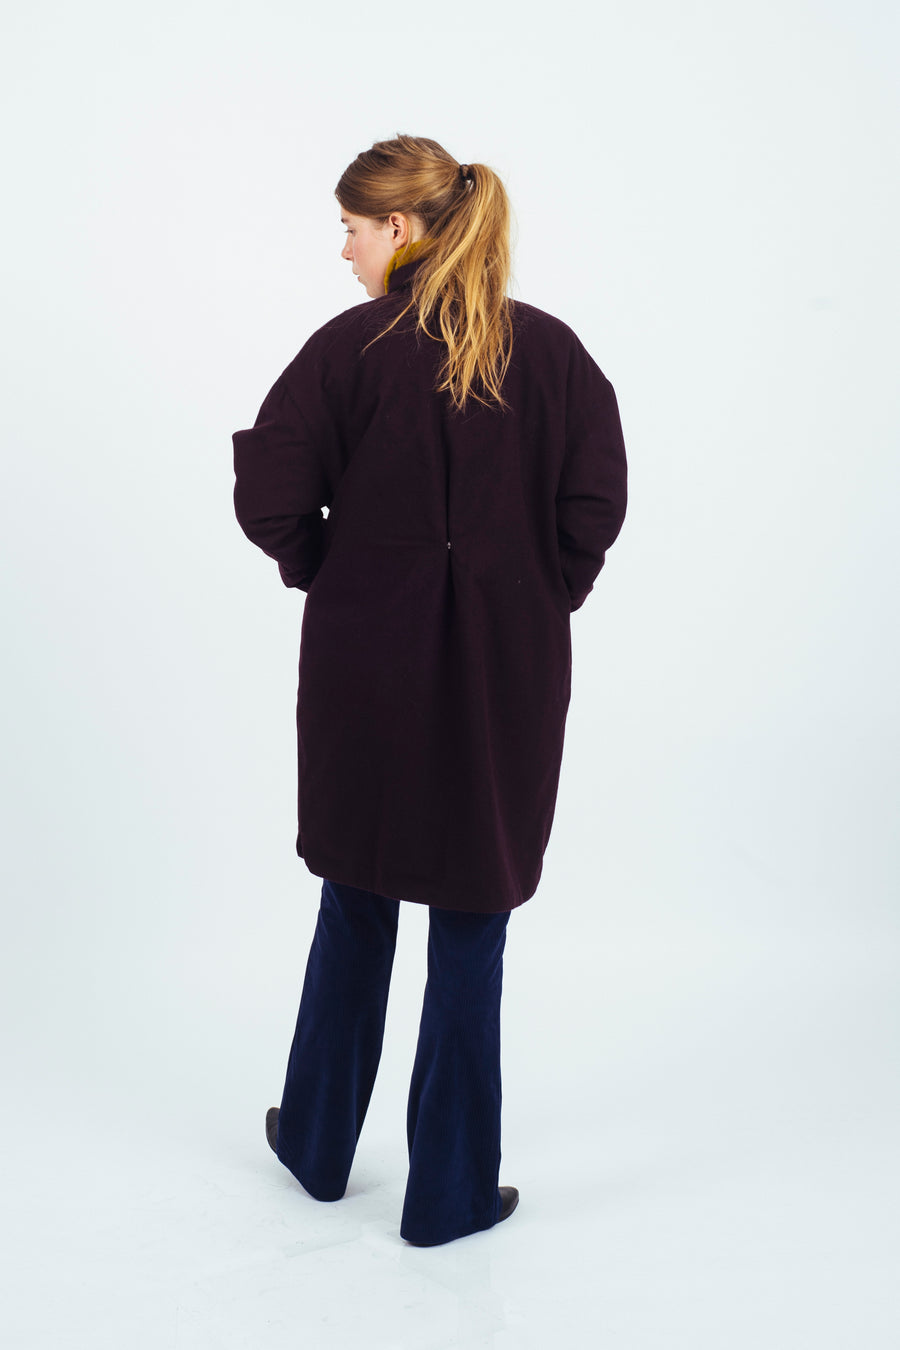 Neat Pleat Storm Wool System Burgundy - Welter Shelter - Waterproof, Windproof, breathable Packable